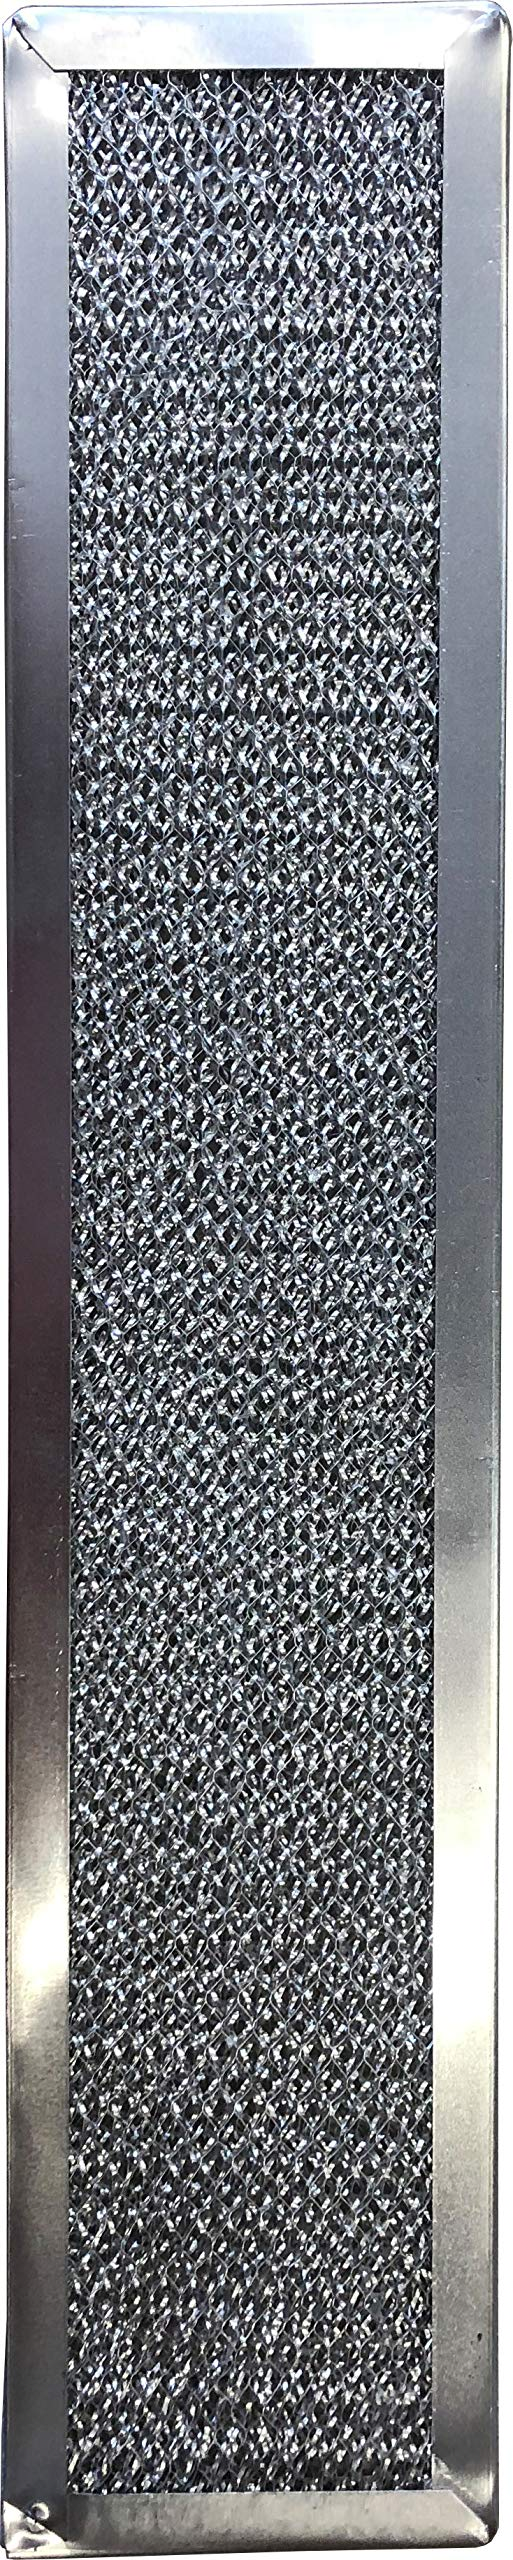 Replacement Aluminum Range Filter Compatible With Dacor 820560,G 8657,   4 x 23 7/8 x 3/32   1 Pack